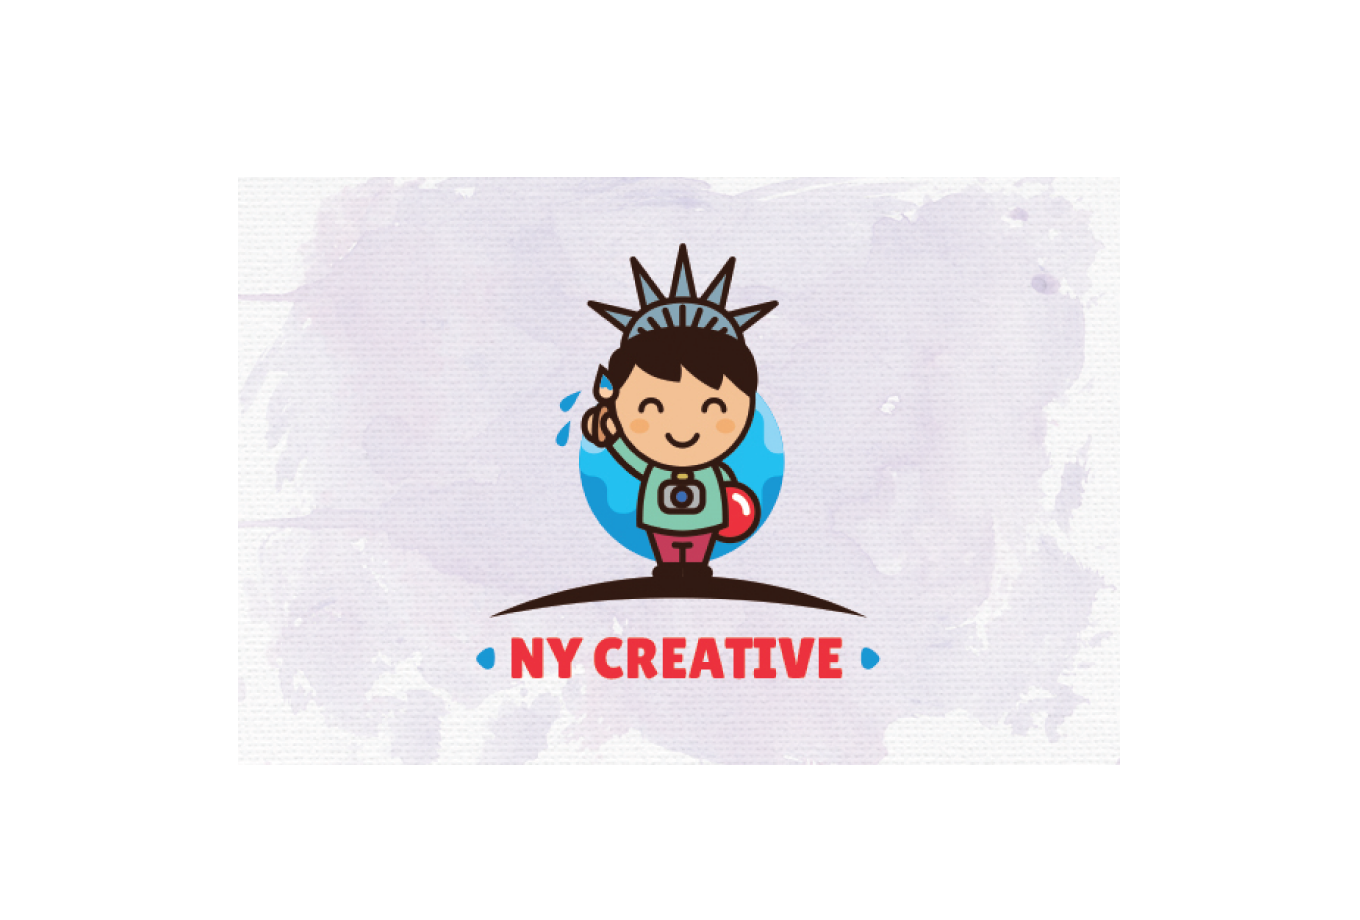 NY Creative Statue of Liberty Kid Logo Design